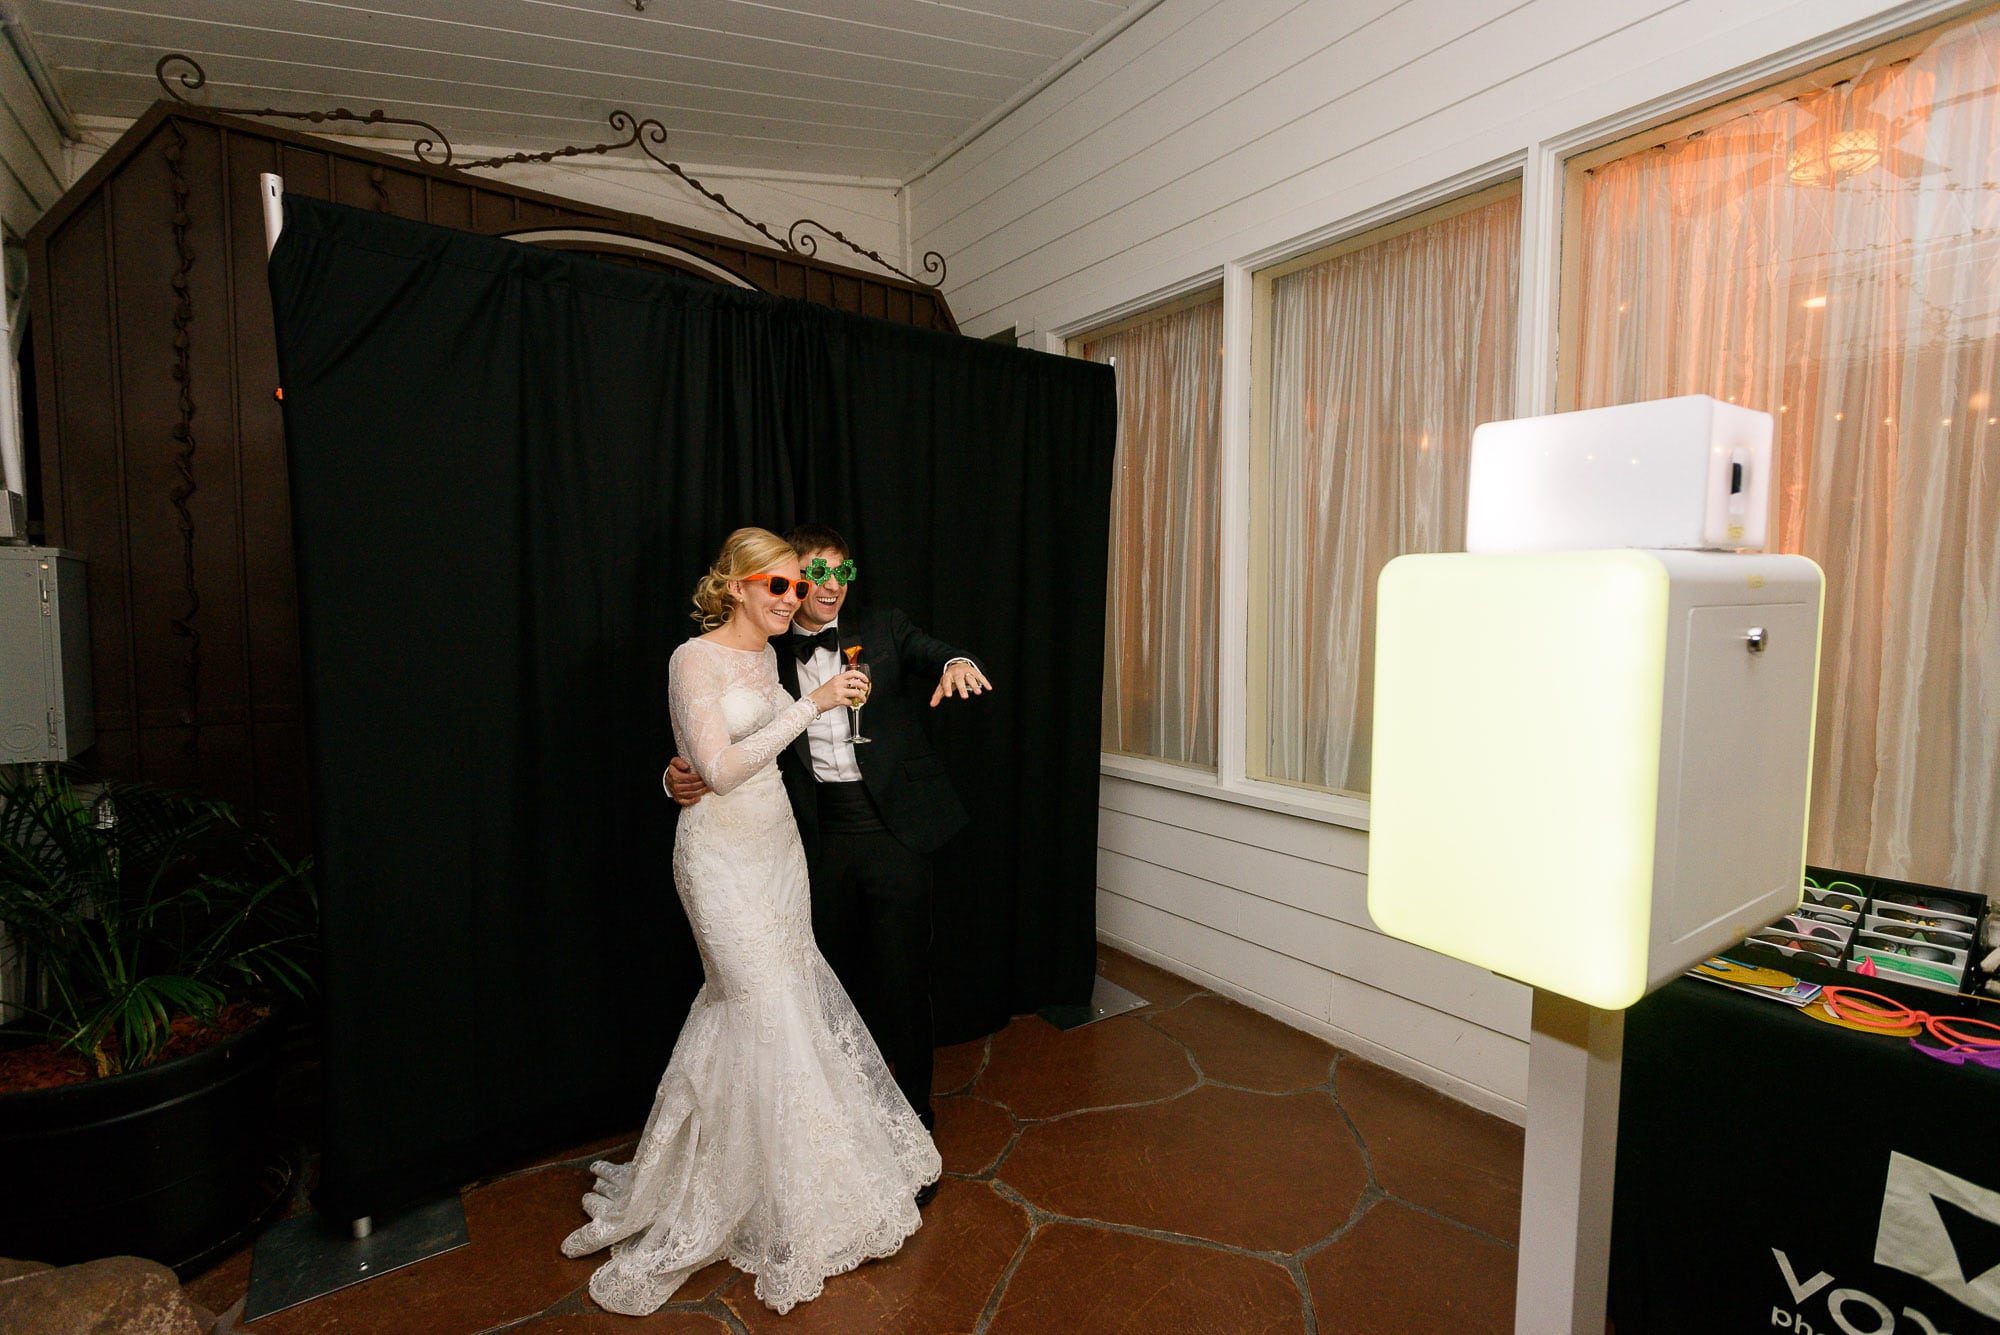 070_Alan_and_Heidi_Los_Angeles_Equestrian_Center_Wedding